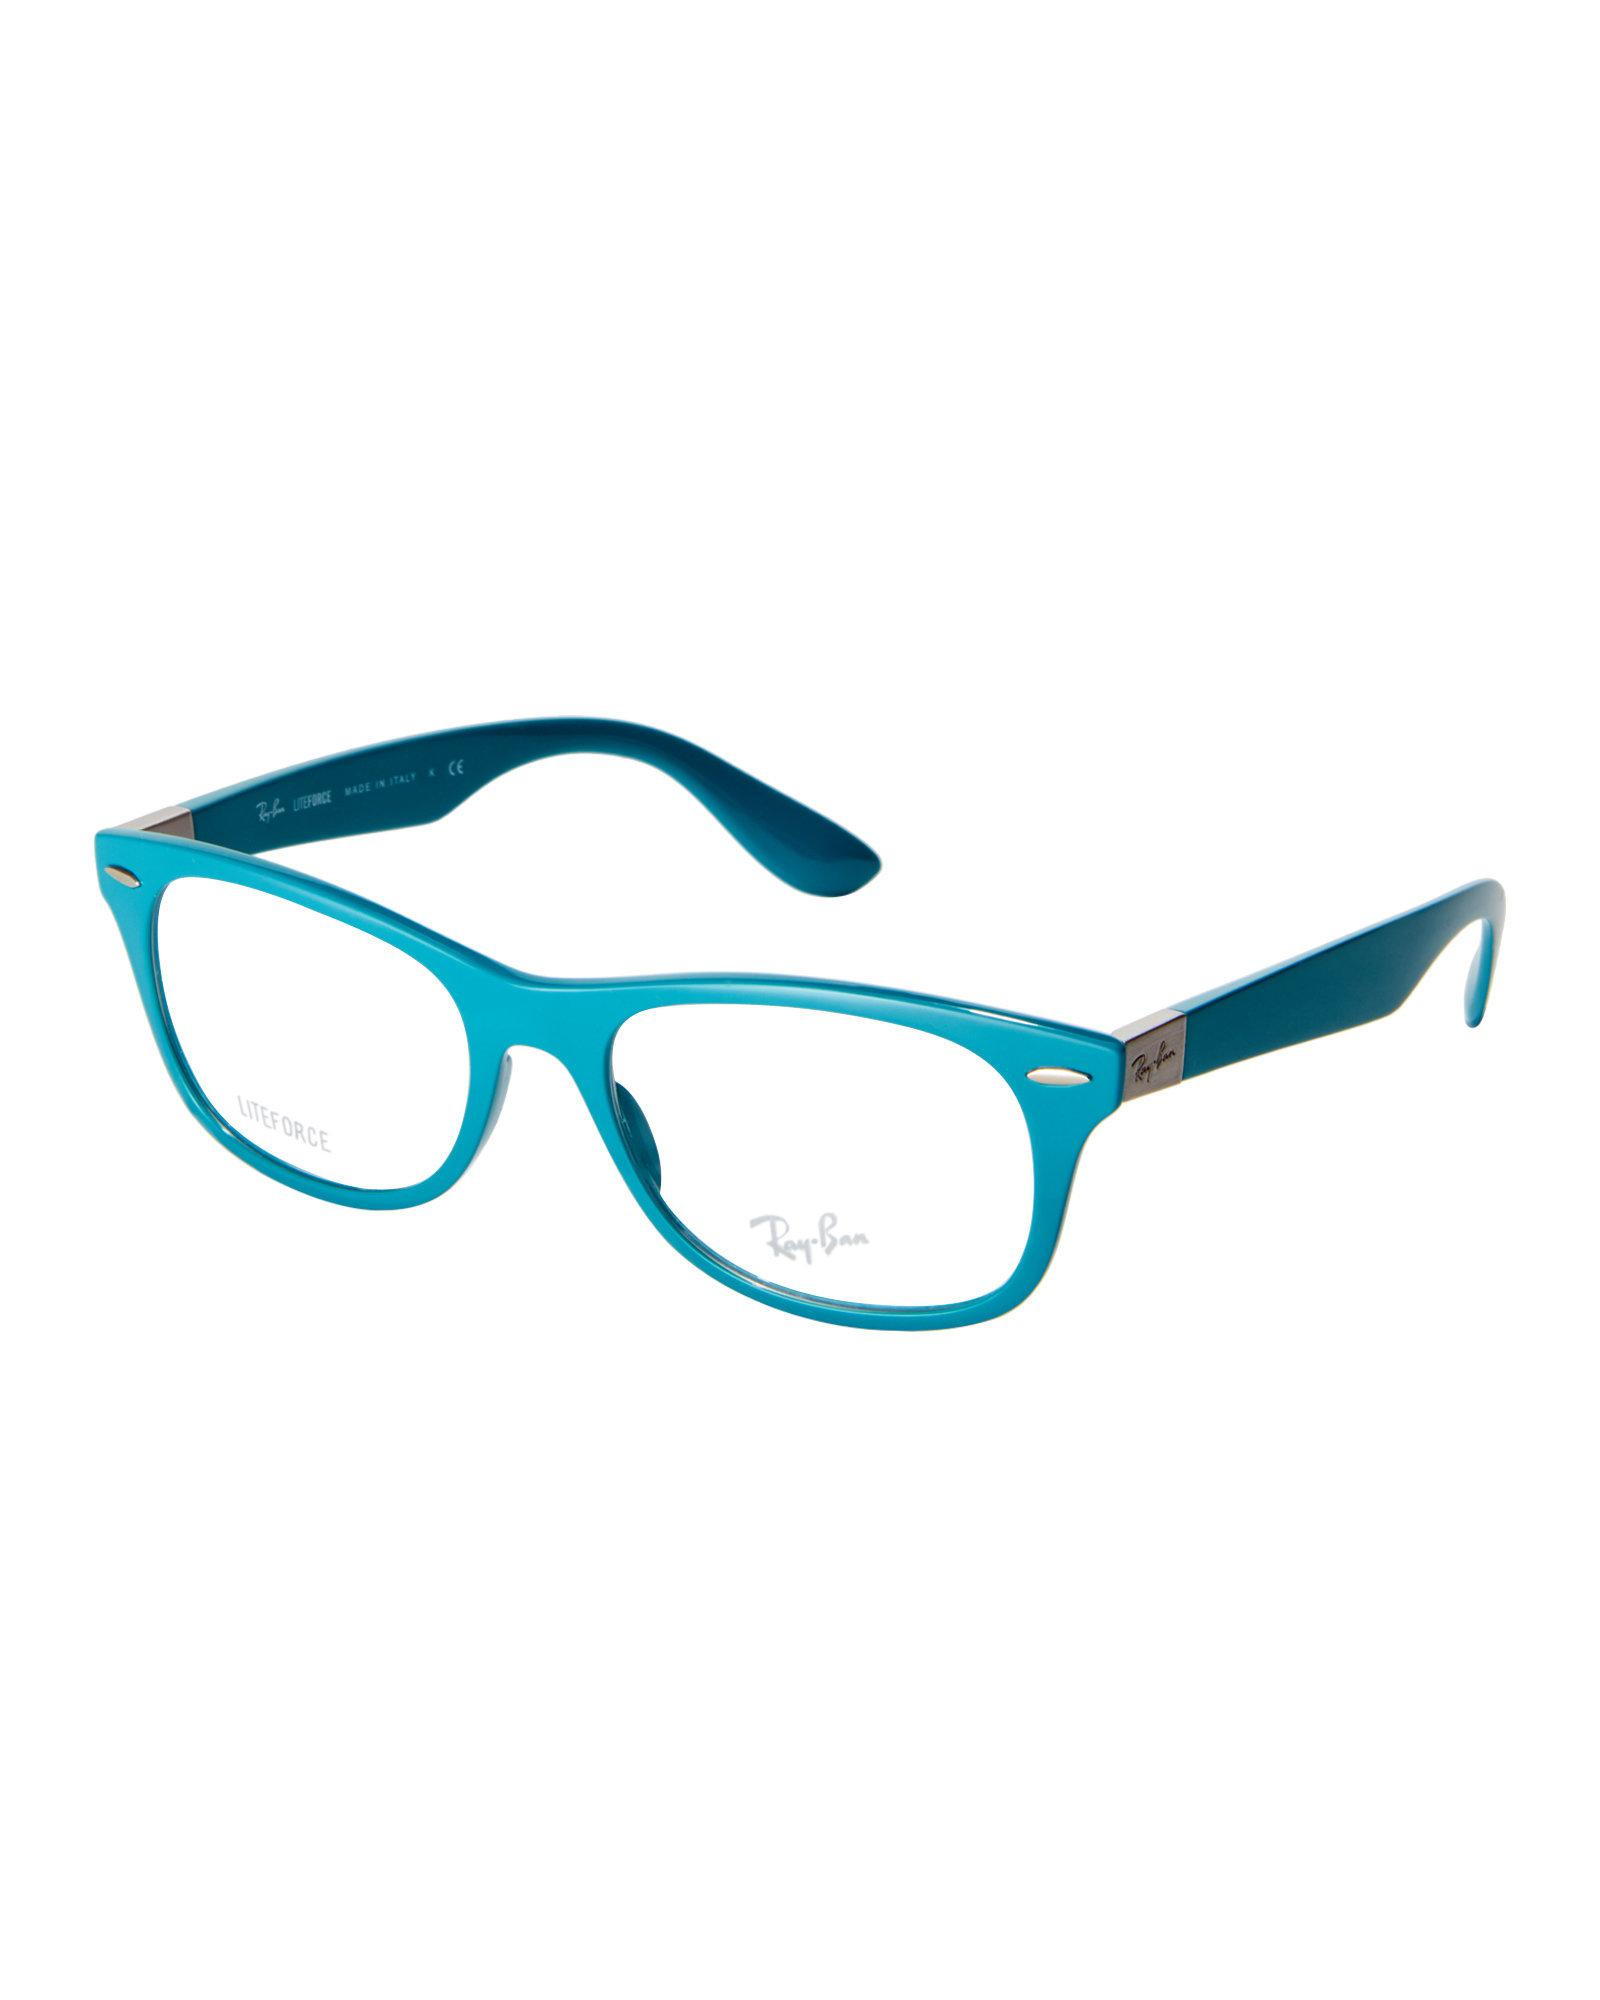 12b7a755ff Lyst - Ray-Ban Rb7032 Teal Wayfarer Frames in Blue